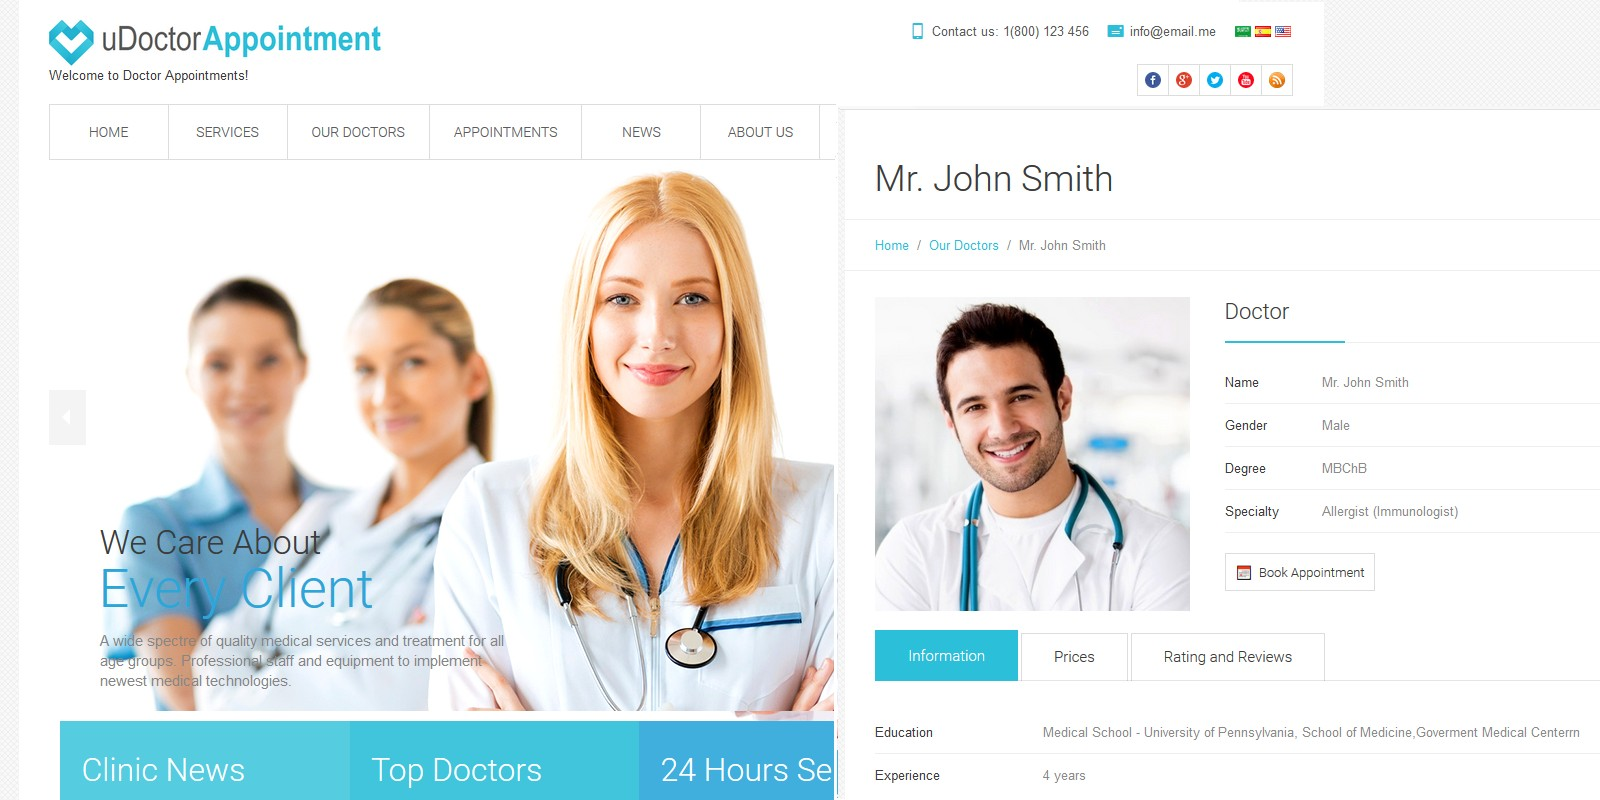 uDoctorAppointment PHP Script